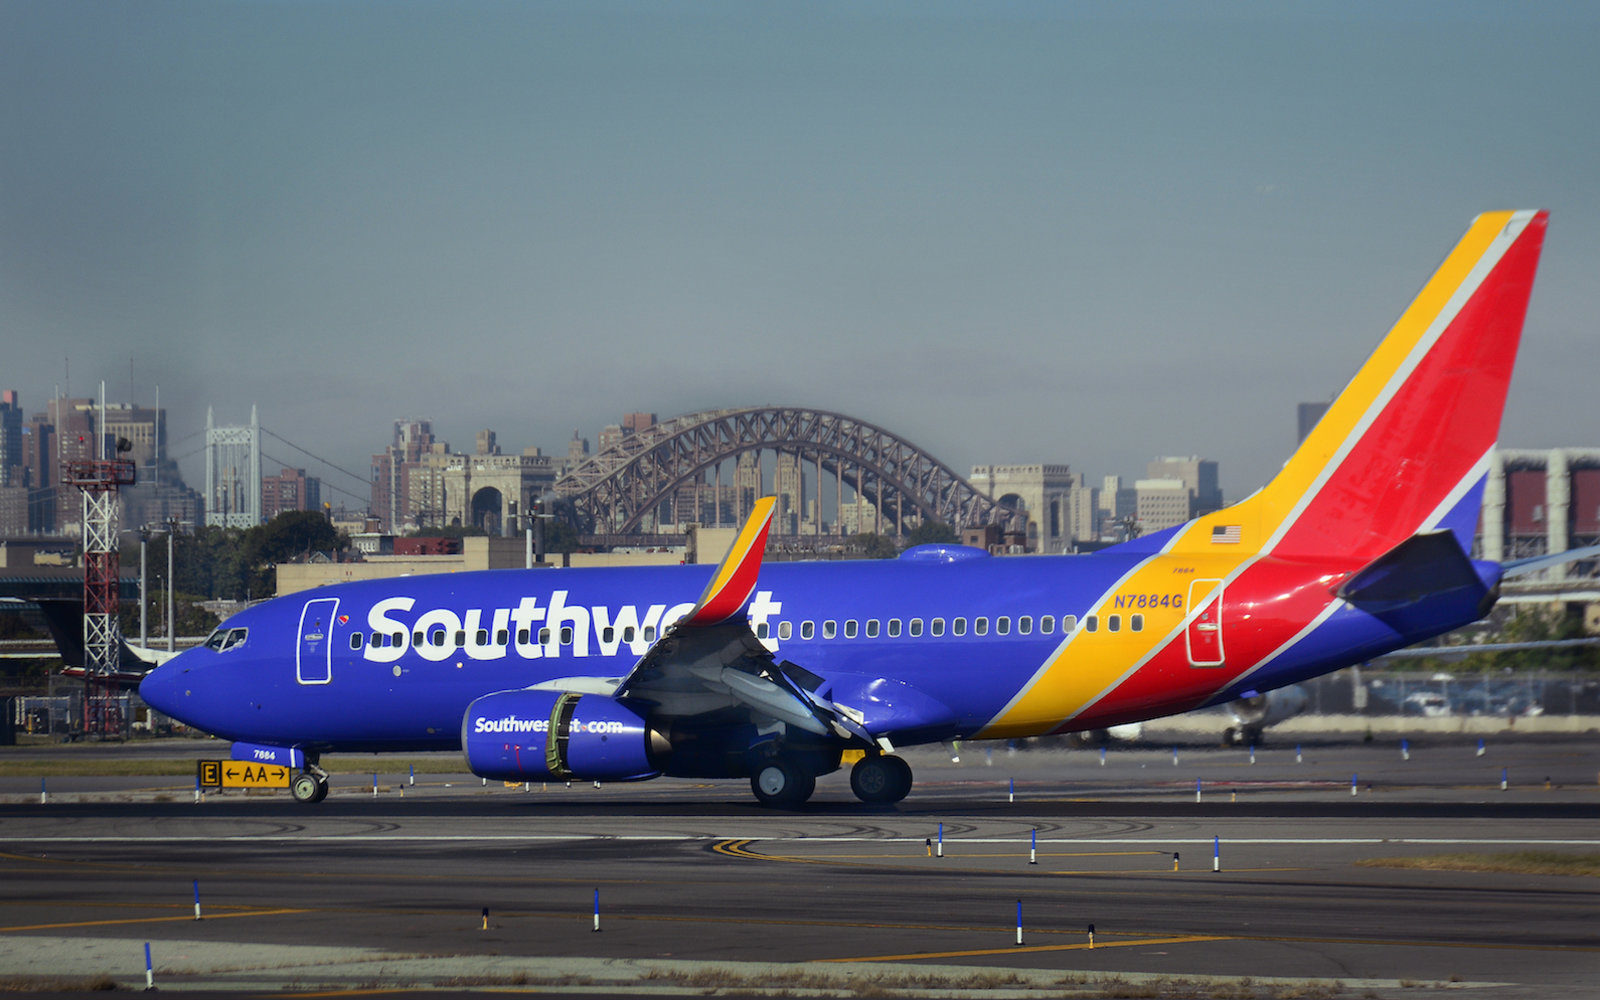 Two Hospitalized After Southwest Airlines Emergency